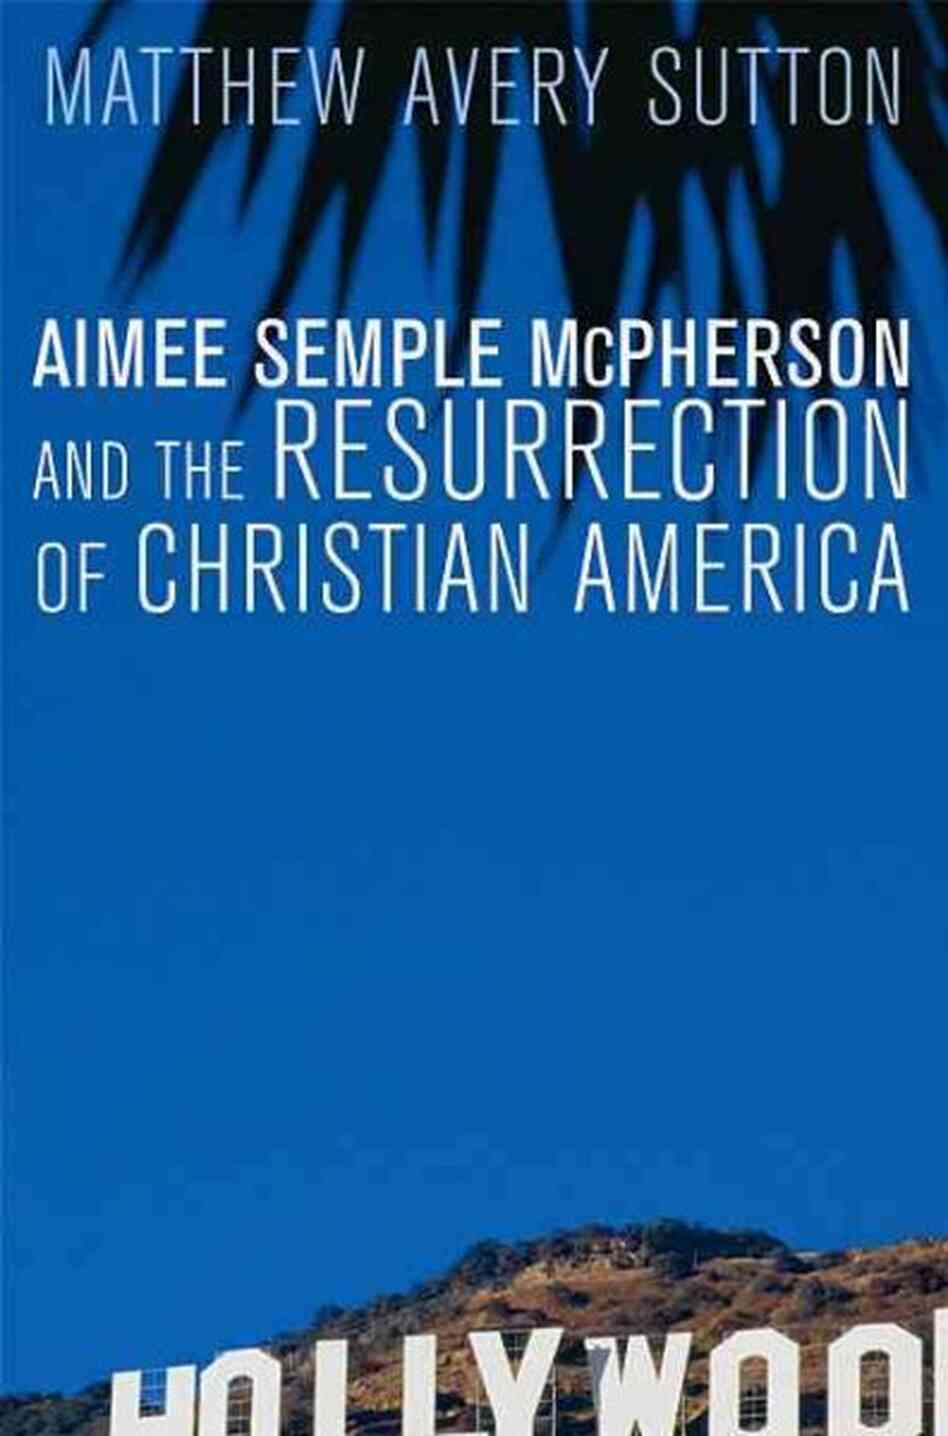 Aimee Semple Mcpherson and the Resurre